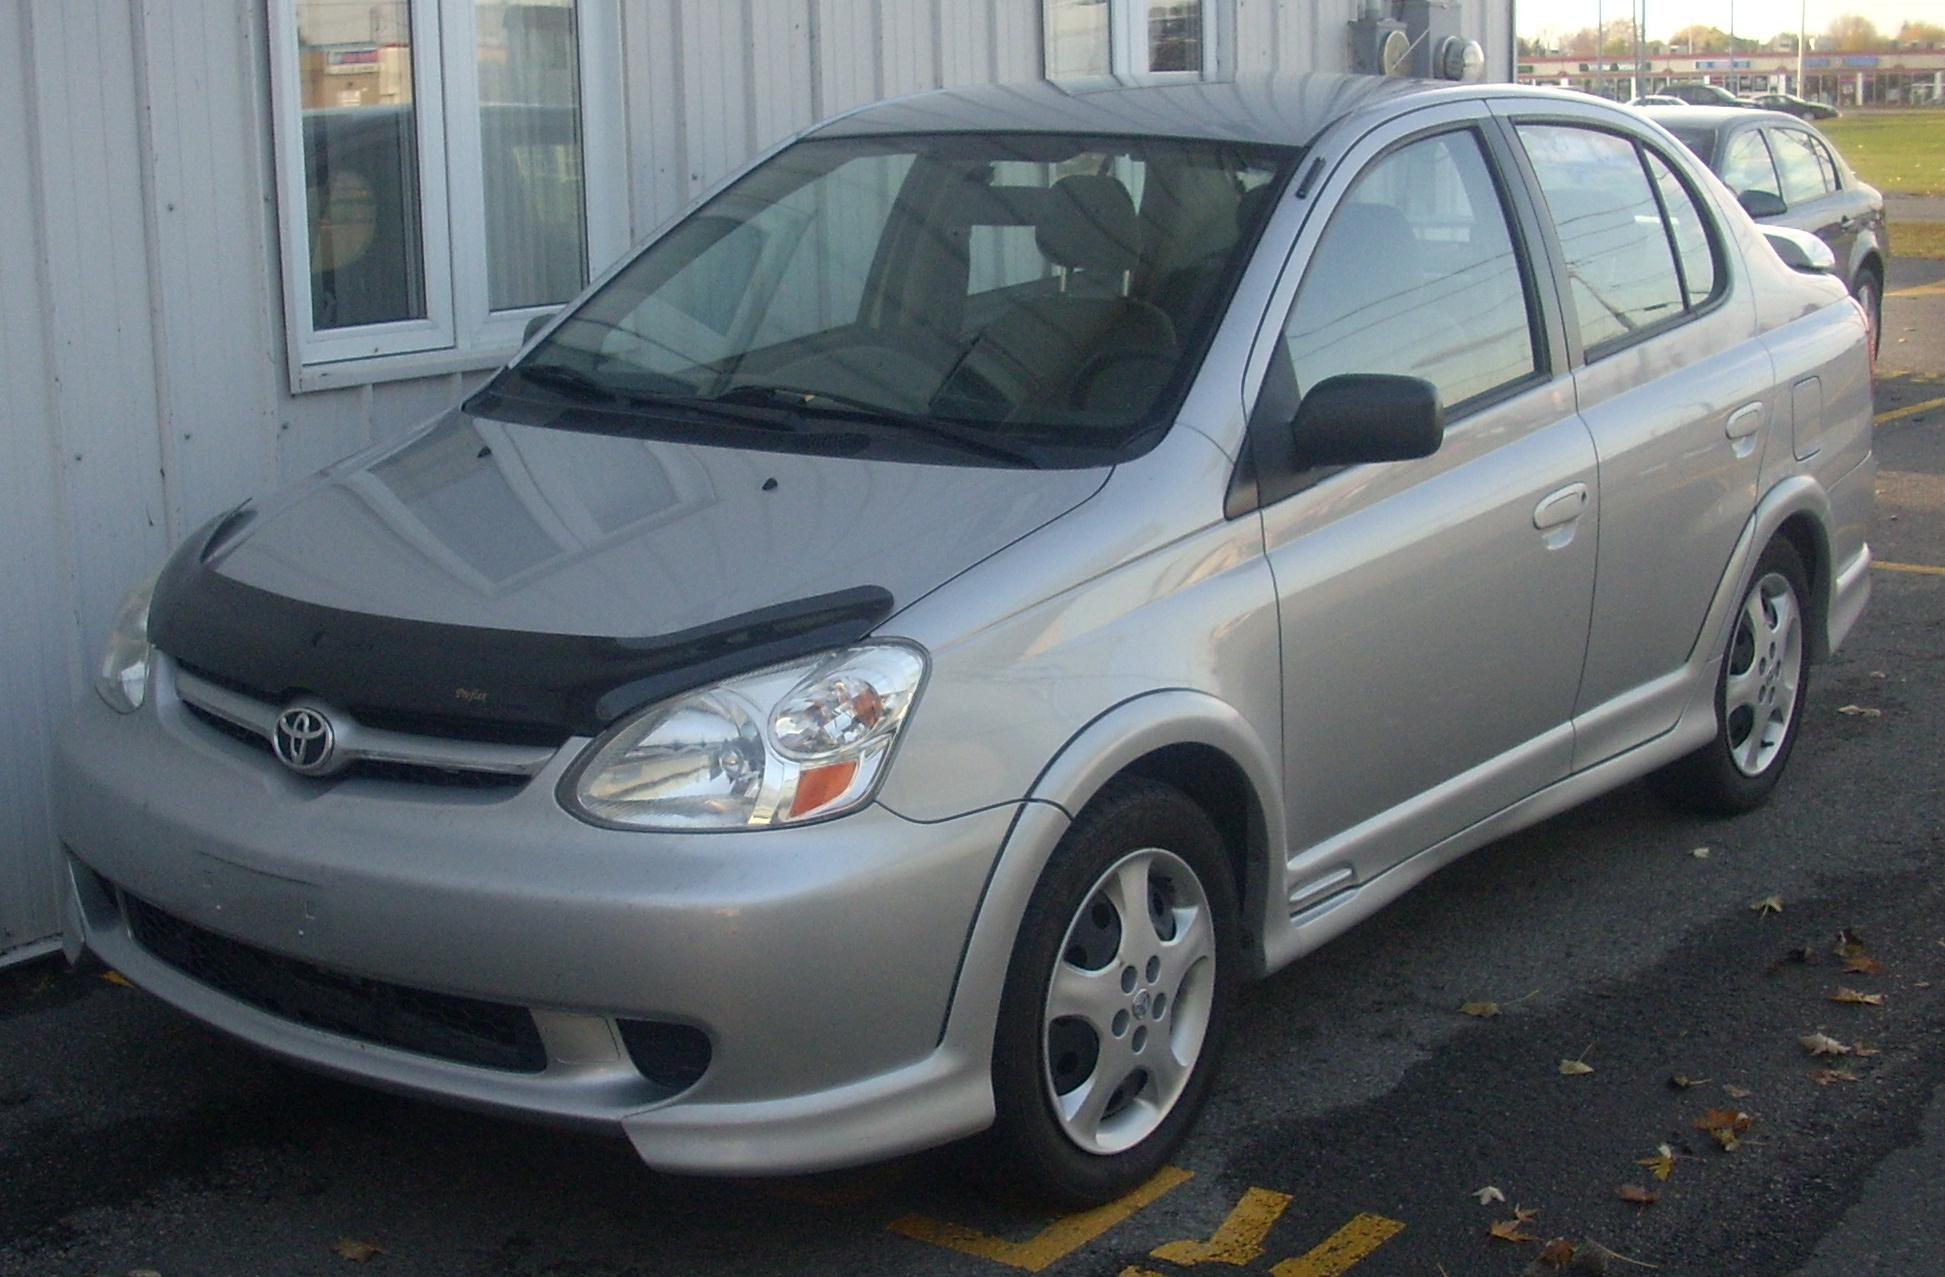 2003 toyota echo sedan pictures information and specs. Black Bedroom Furniture Sets. Home Design Ideas